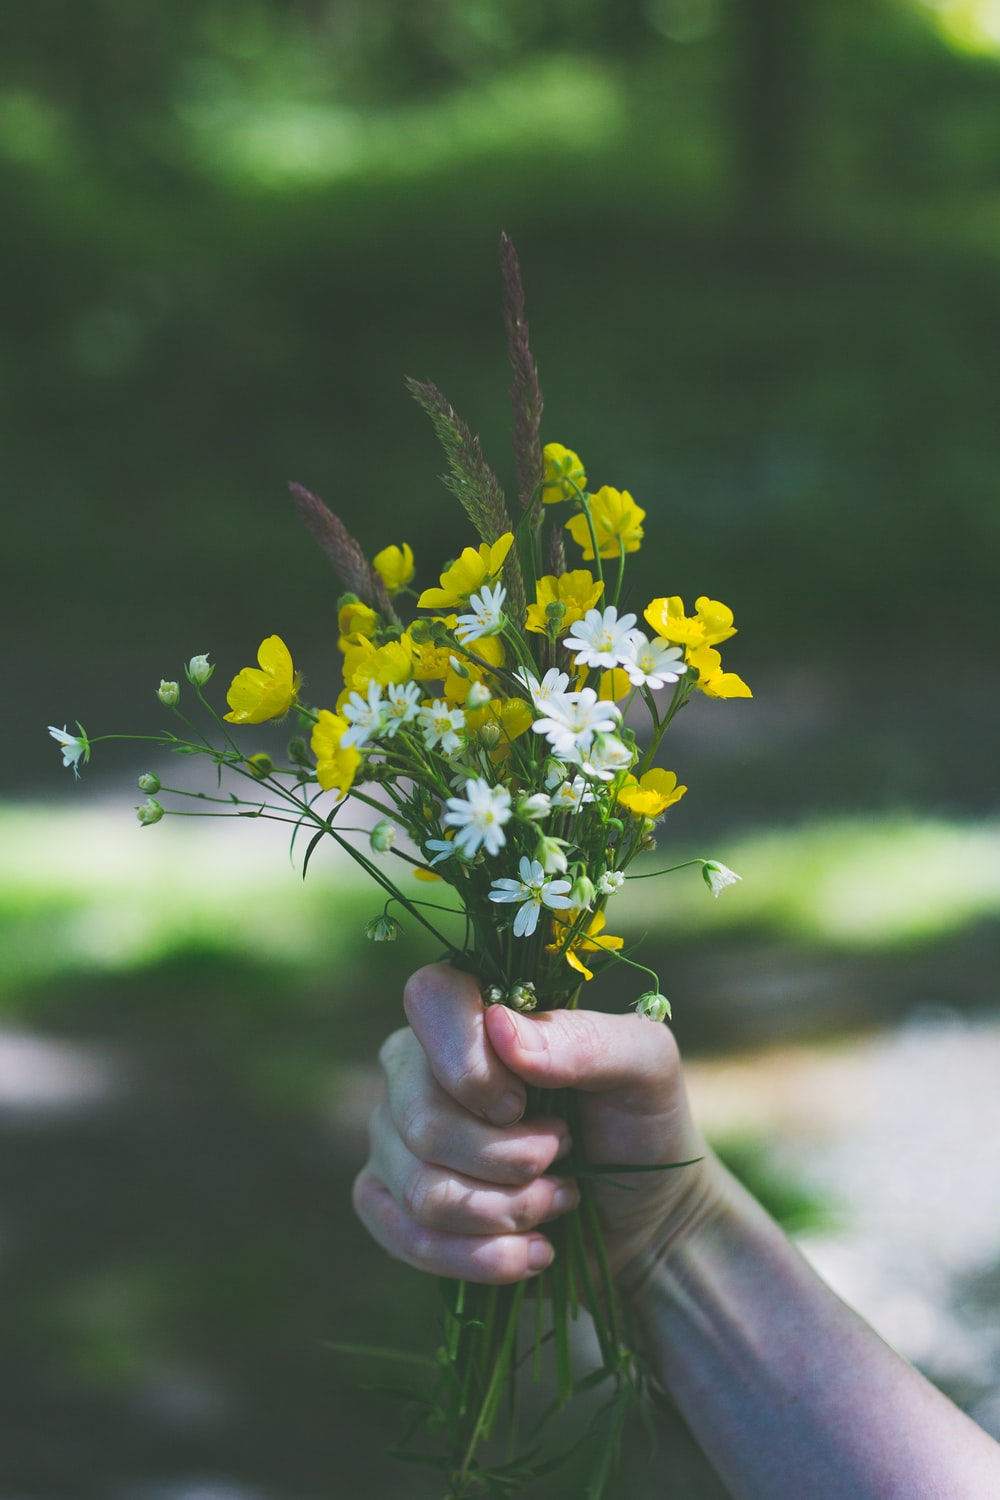 person holding yellow flowers during daytime